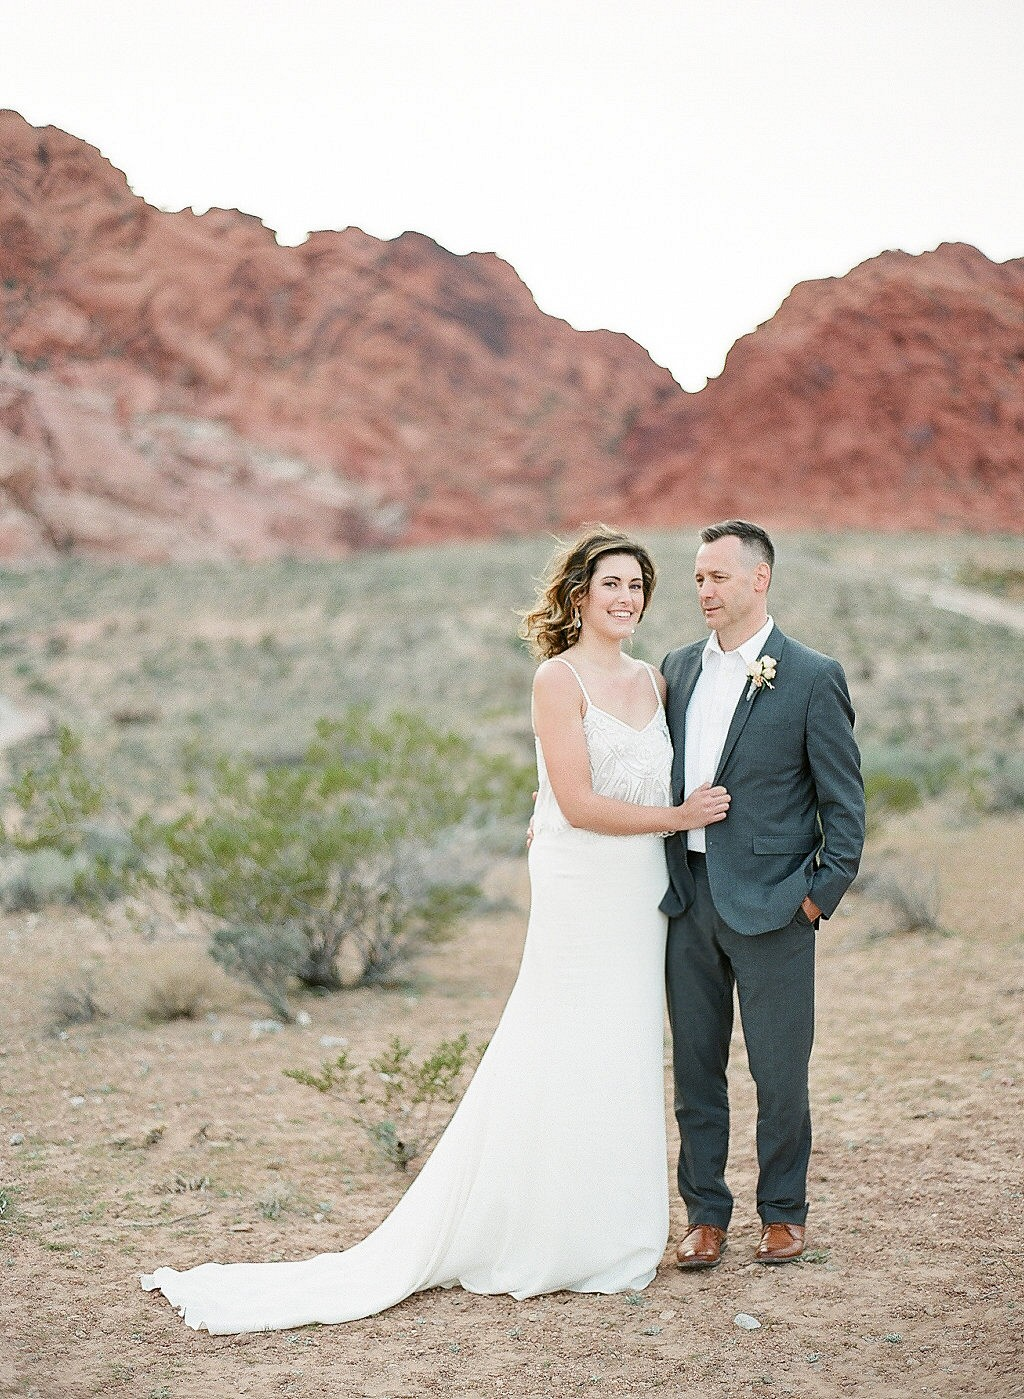 Simple and Elegant Real Elopement